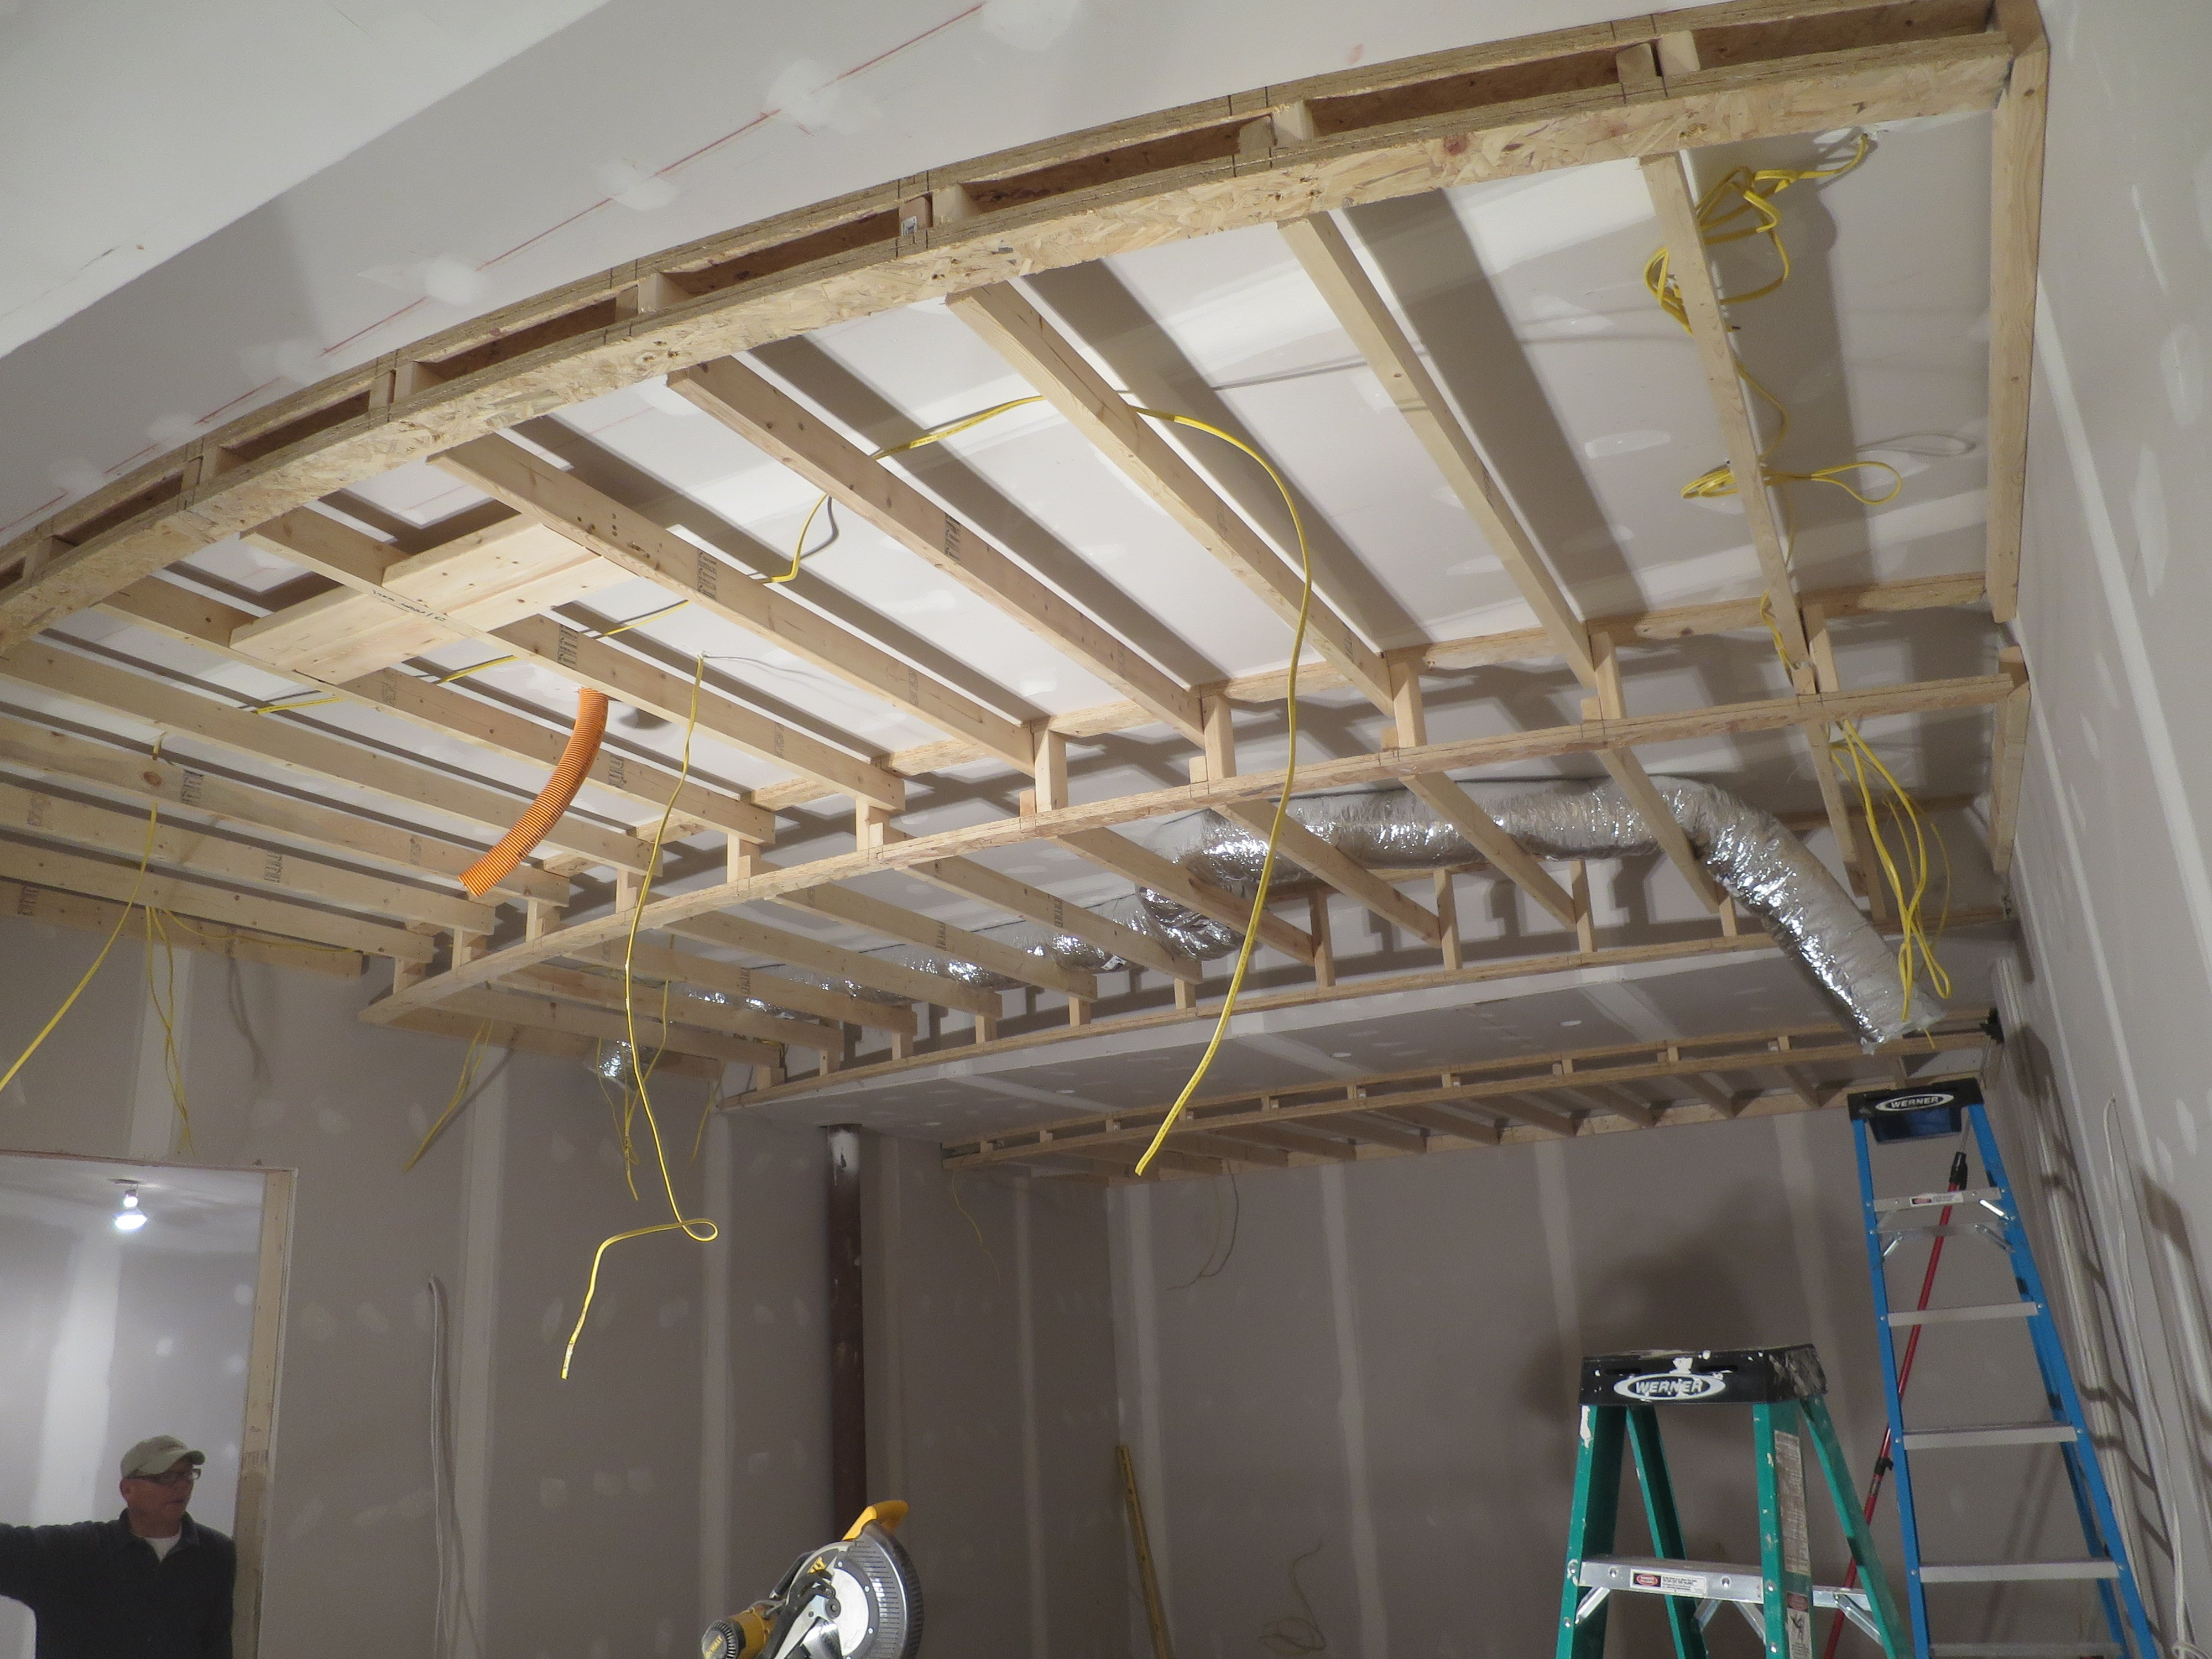 org ceiling wll installation bailey channel ing wlls theteenline resilient nd s spacing